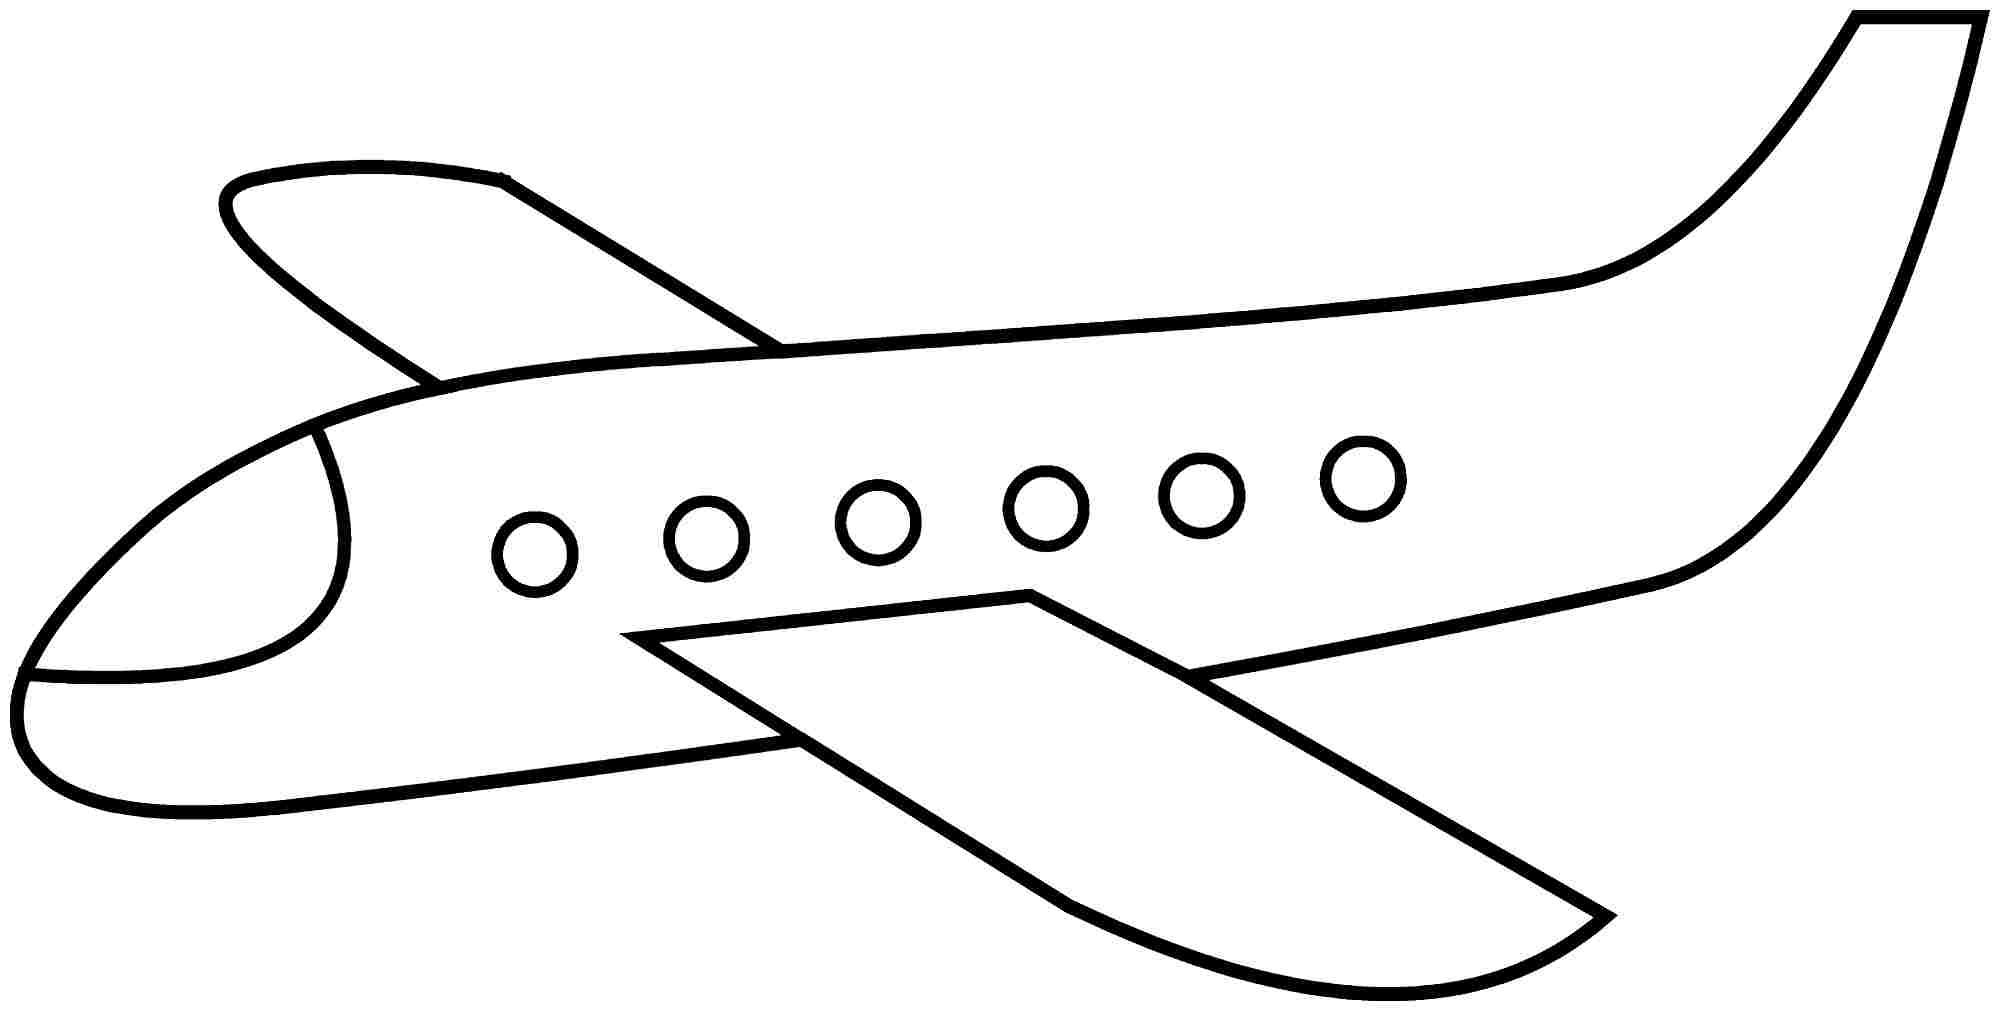 Simple Airplane Coloring Pages Google Search Airplane Coloring Pages Easy Coloring Pages Coloring Pages To Print